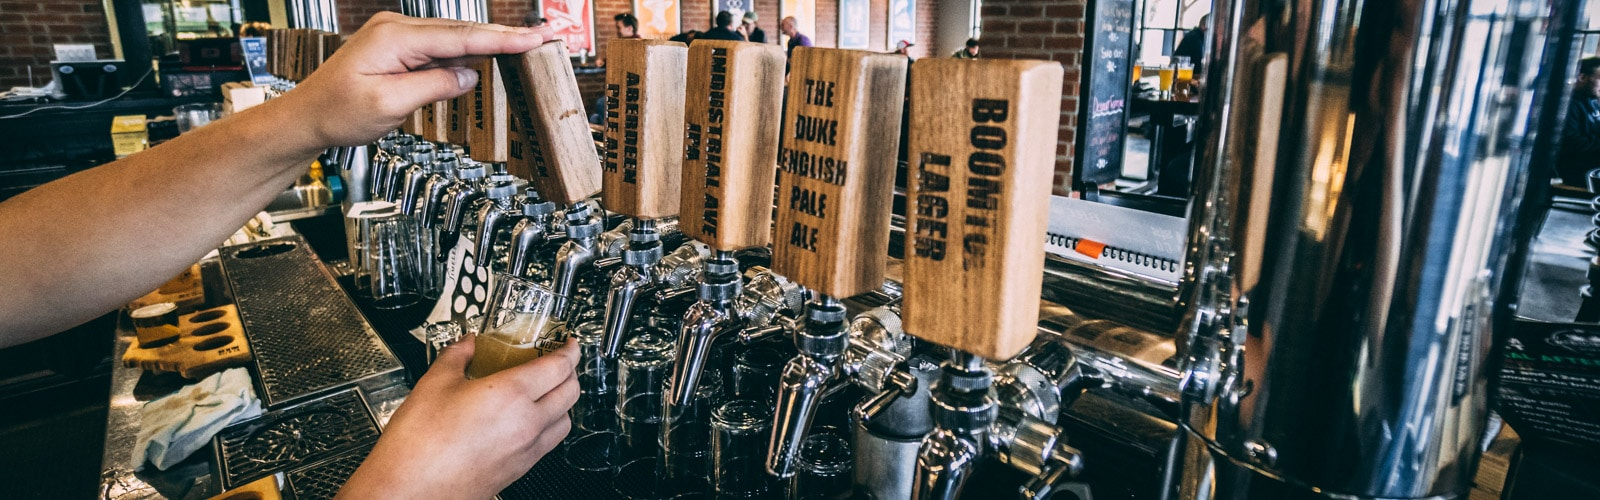 Discover the Medicine Hat Craft Beer Scene